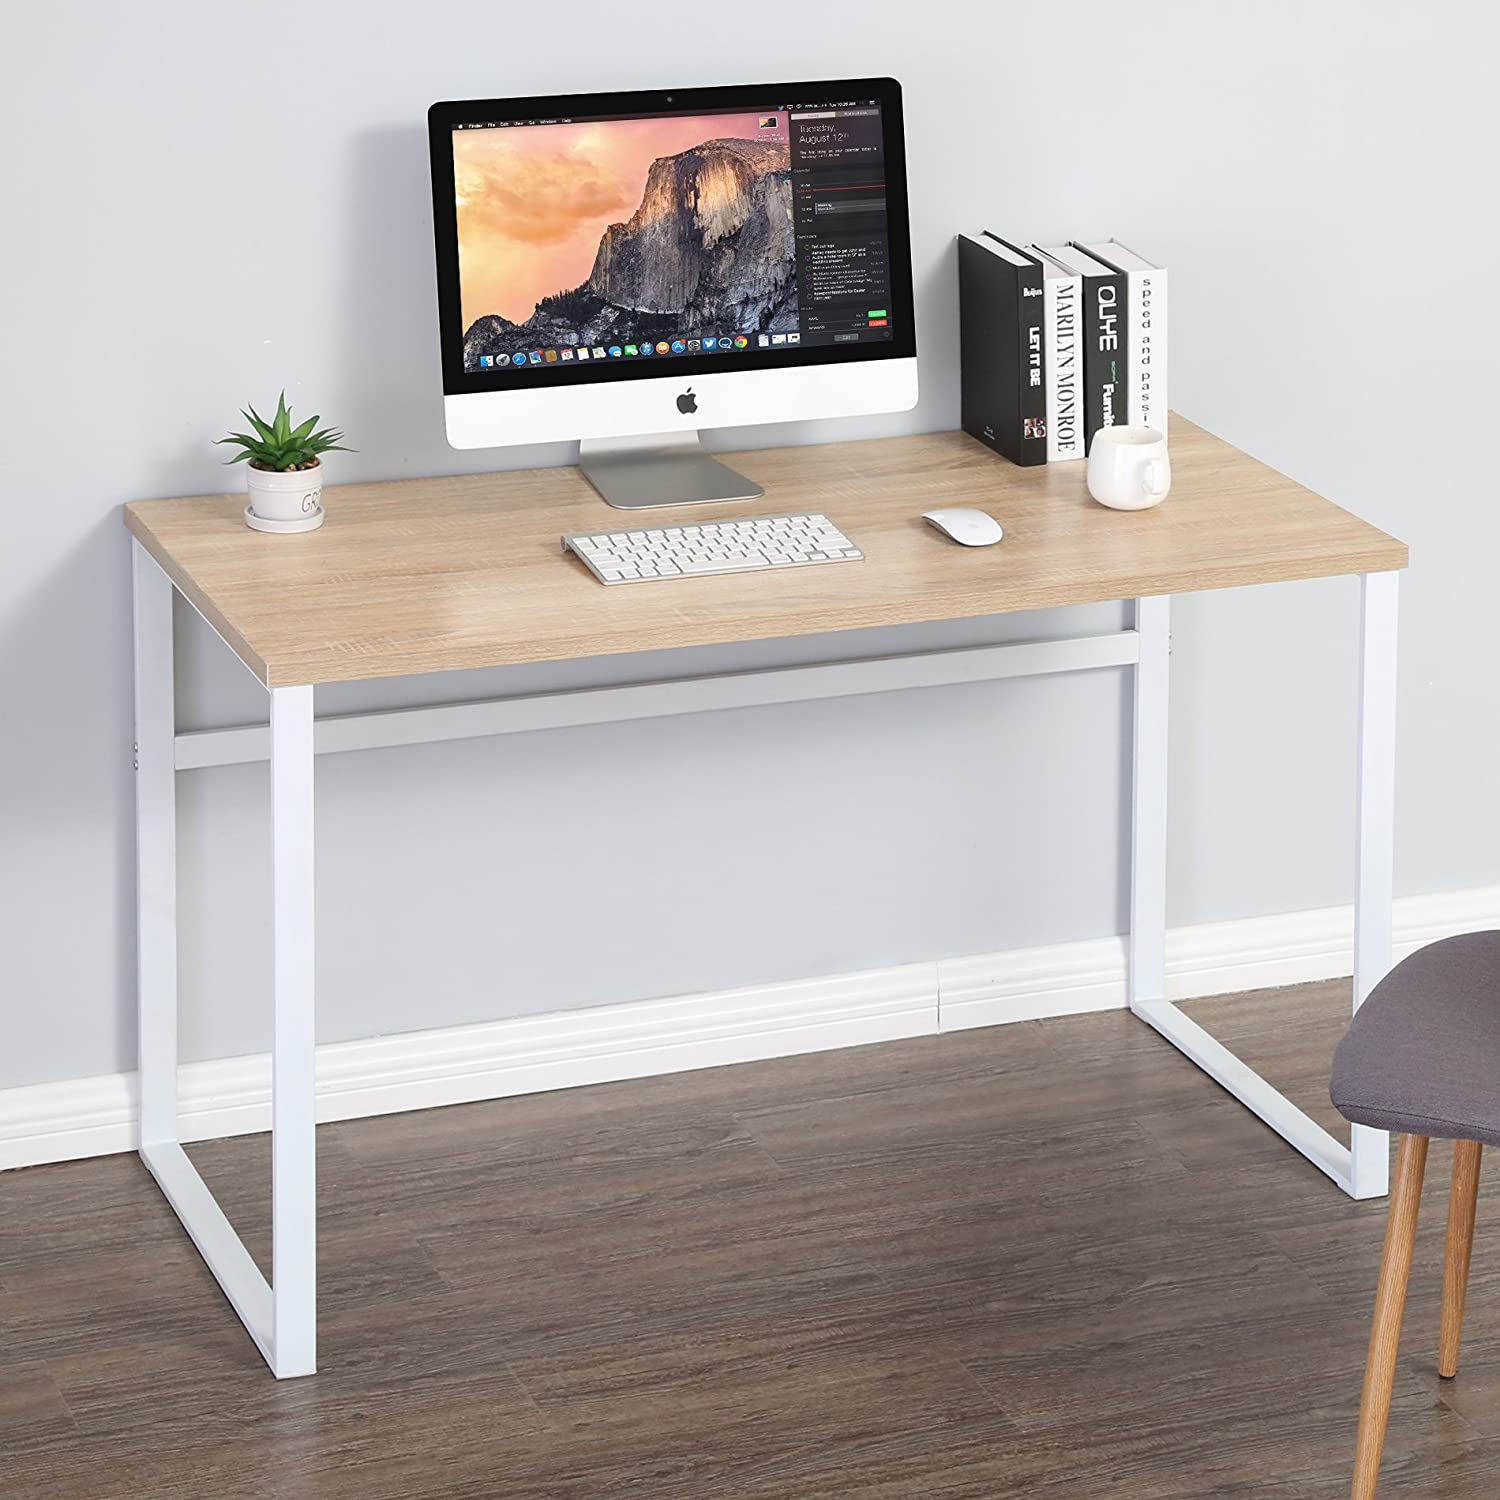 Amazon com homury computer desk office desk wood study writing soho desk table for home officewhite kitchen dining